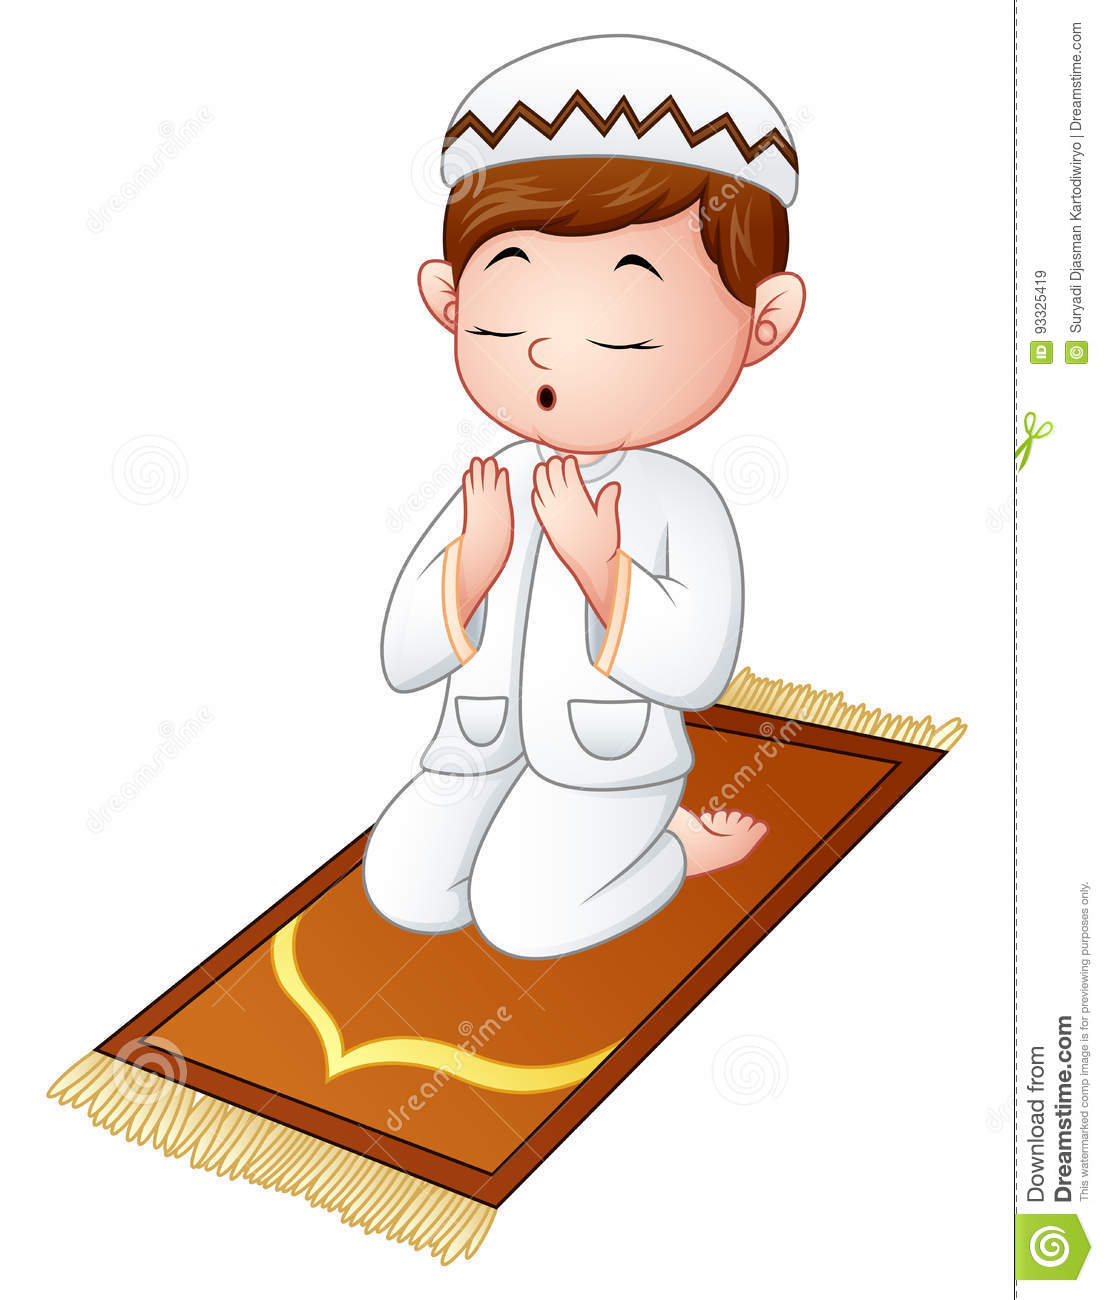 how to sit while eating in islam